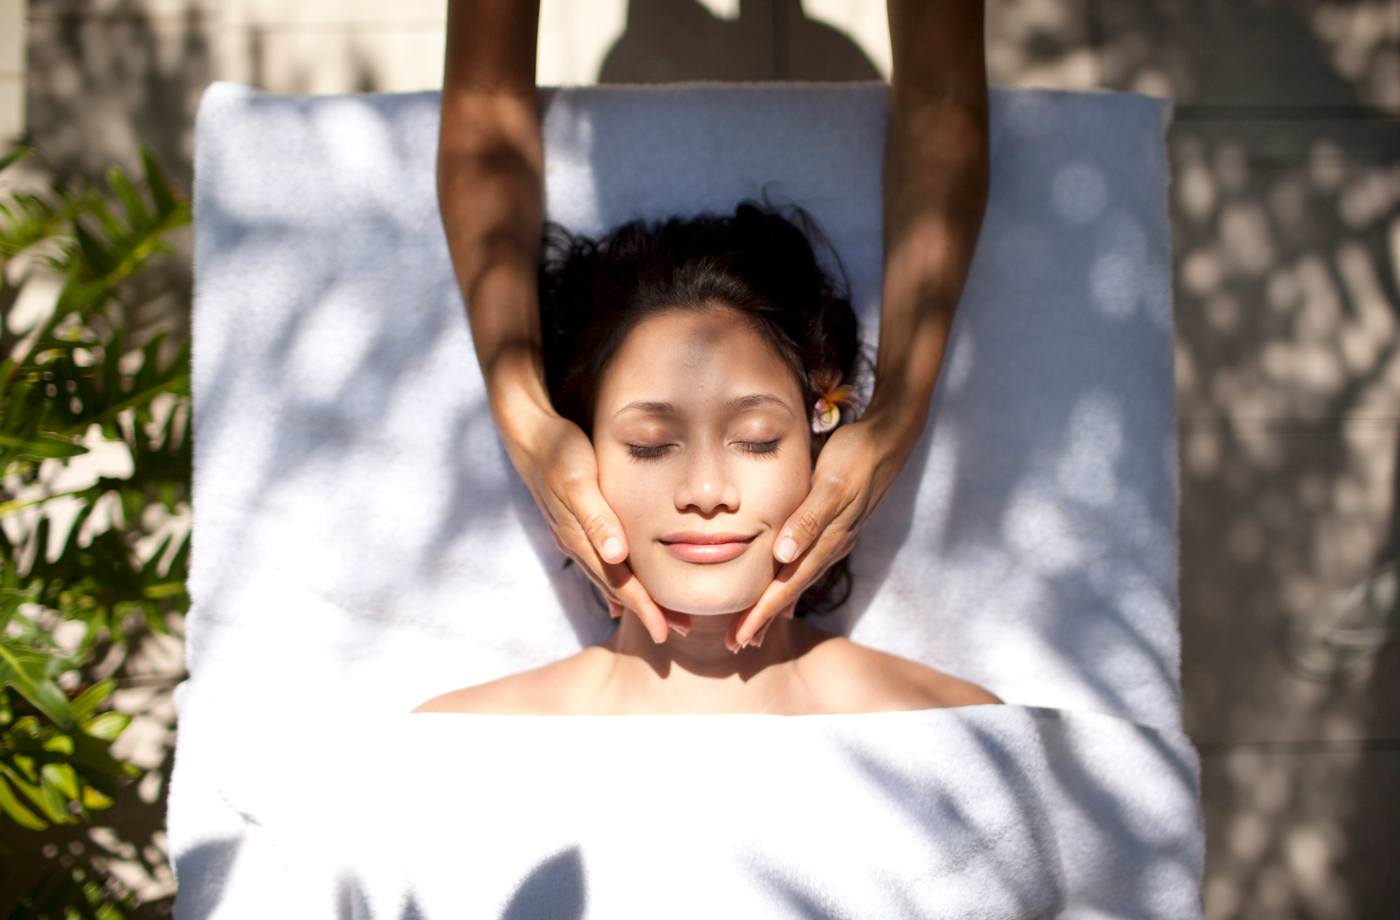 GO AHEAD, BOOK A MASSAGE: THIS IS HOW OFTEN YOU SHOULD GET A RUBDOWN TO REAP THE BENEFITS